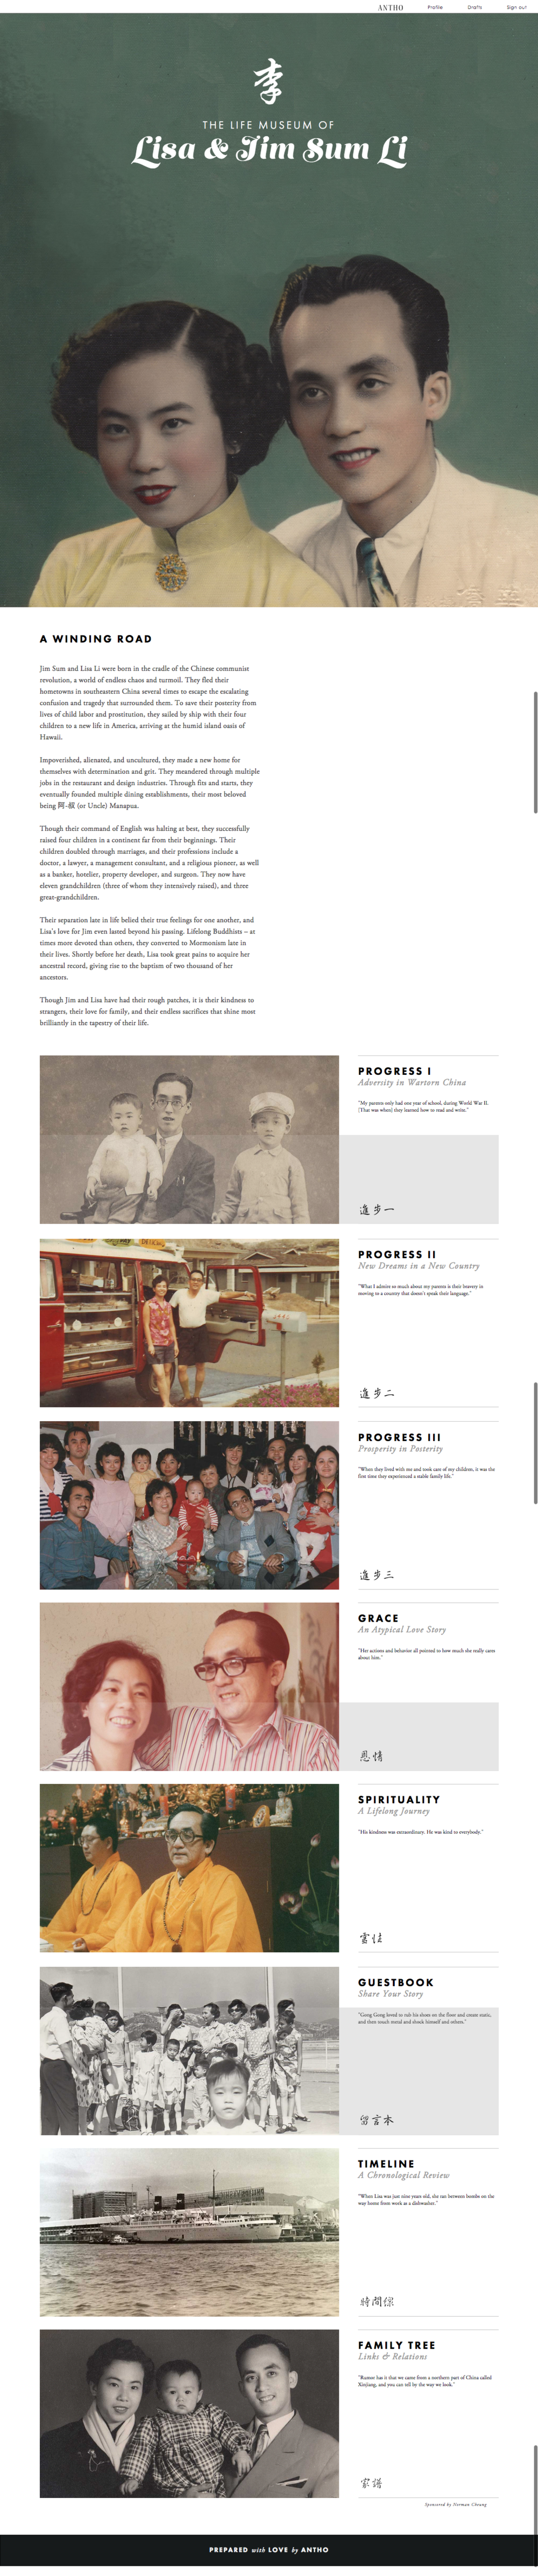 The landing page of  The Lisa and Jim Sum Li Museum